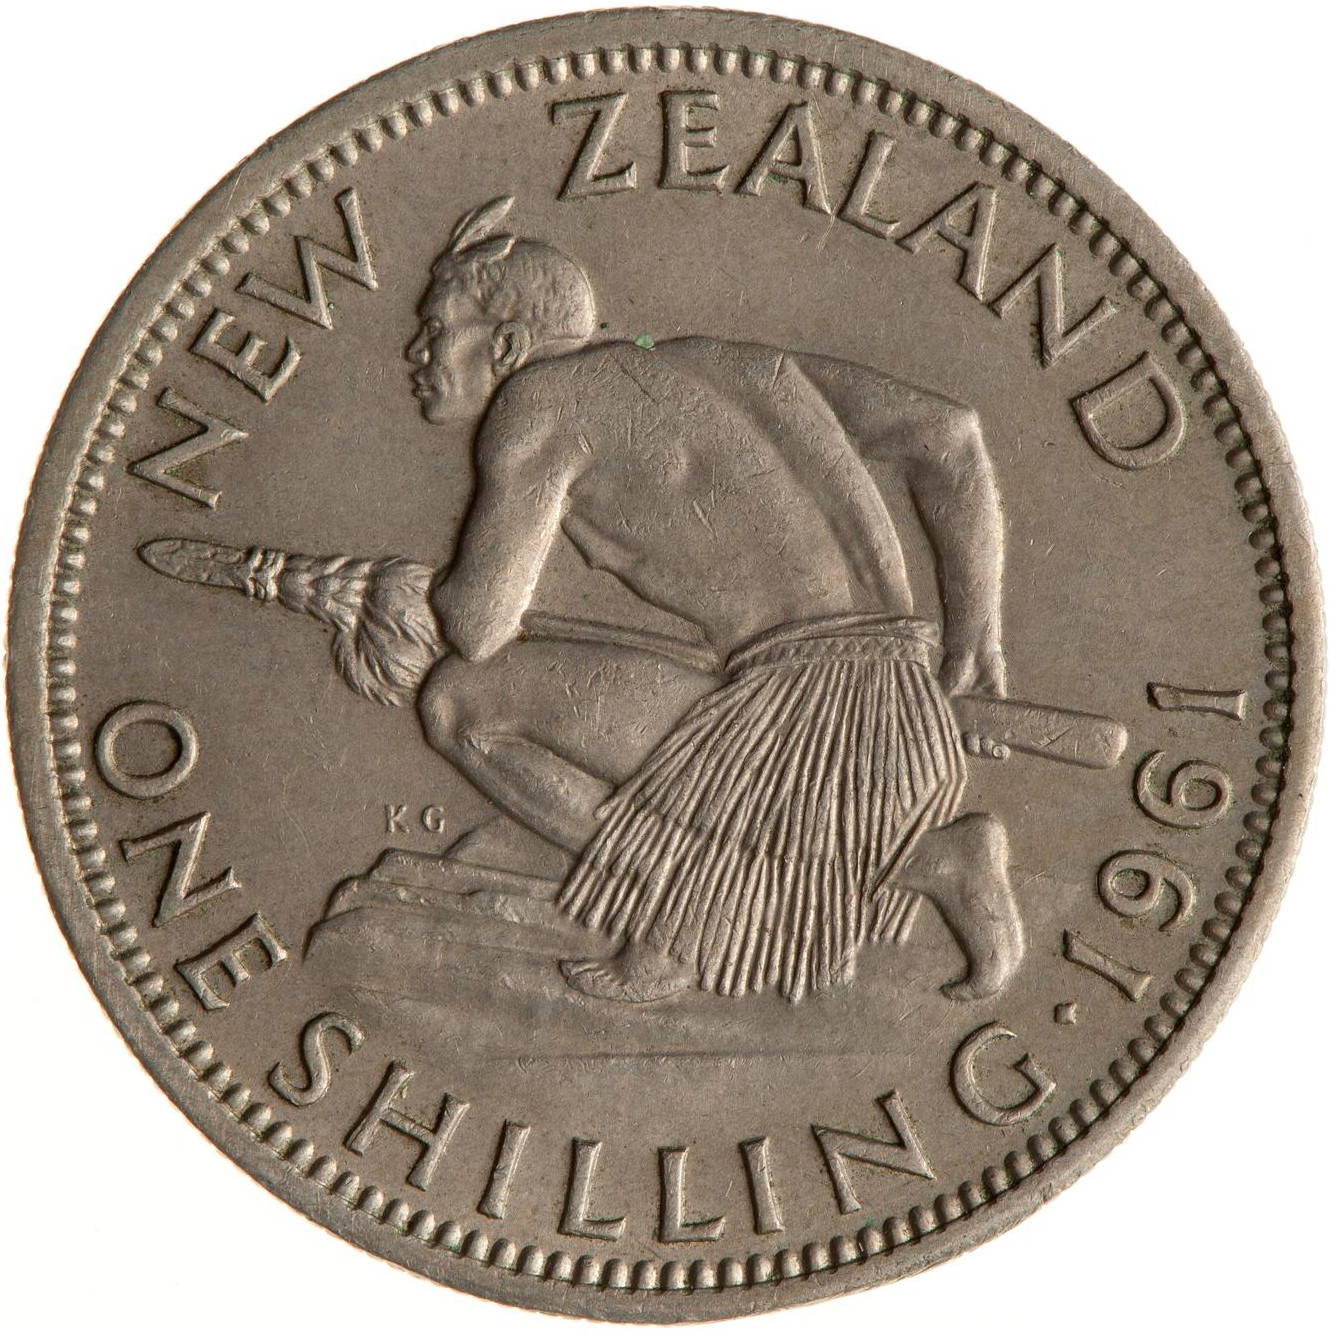 Shilling 1961: Photo Coin - 1 Shilling, New Zealand, 1961